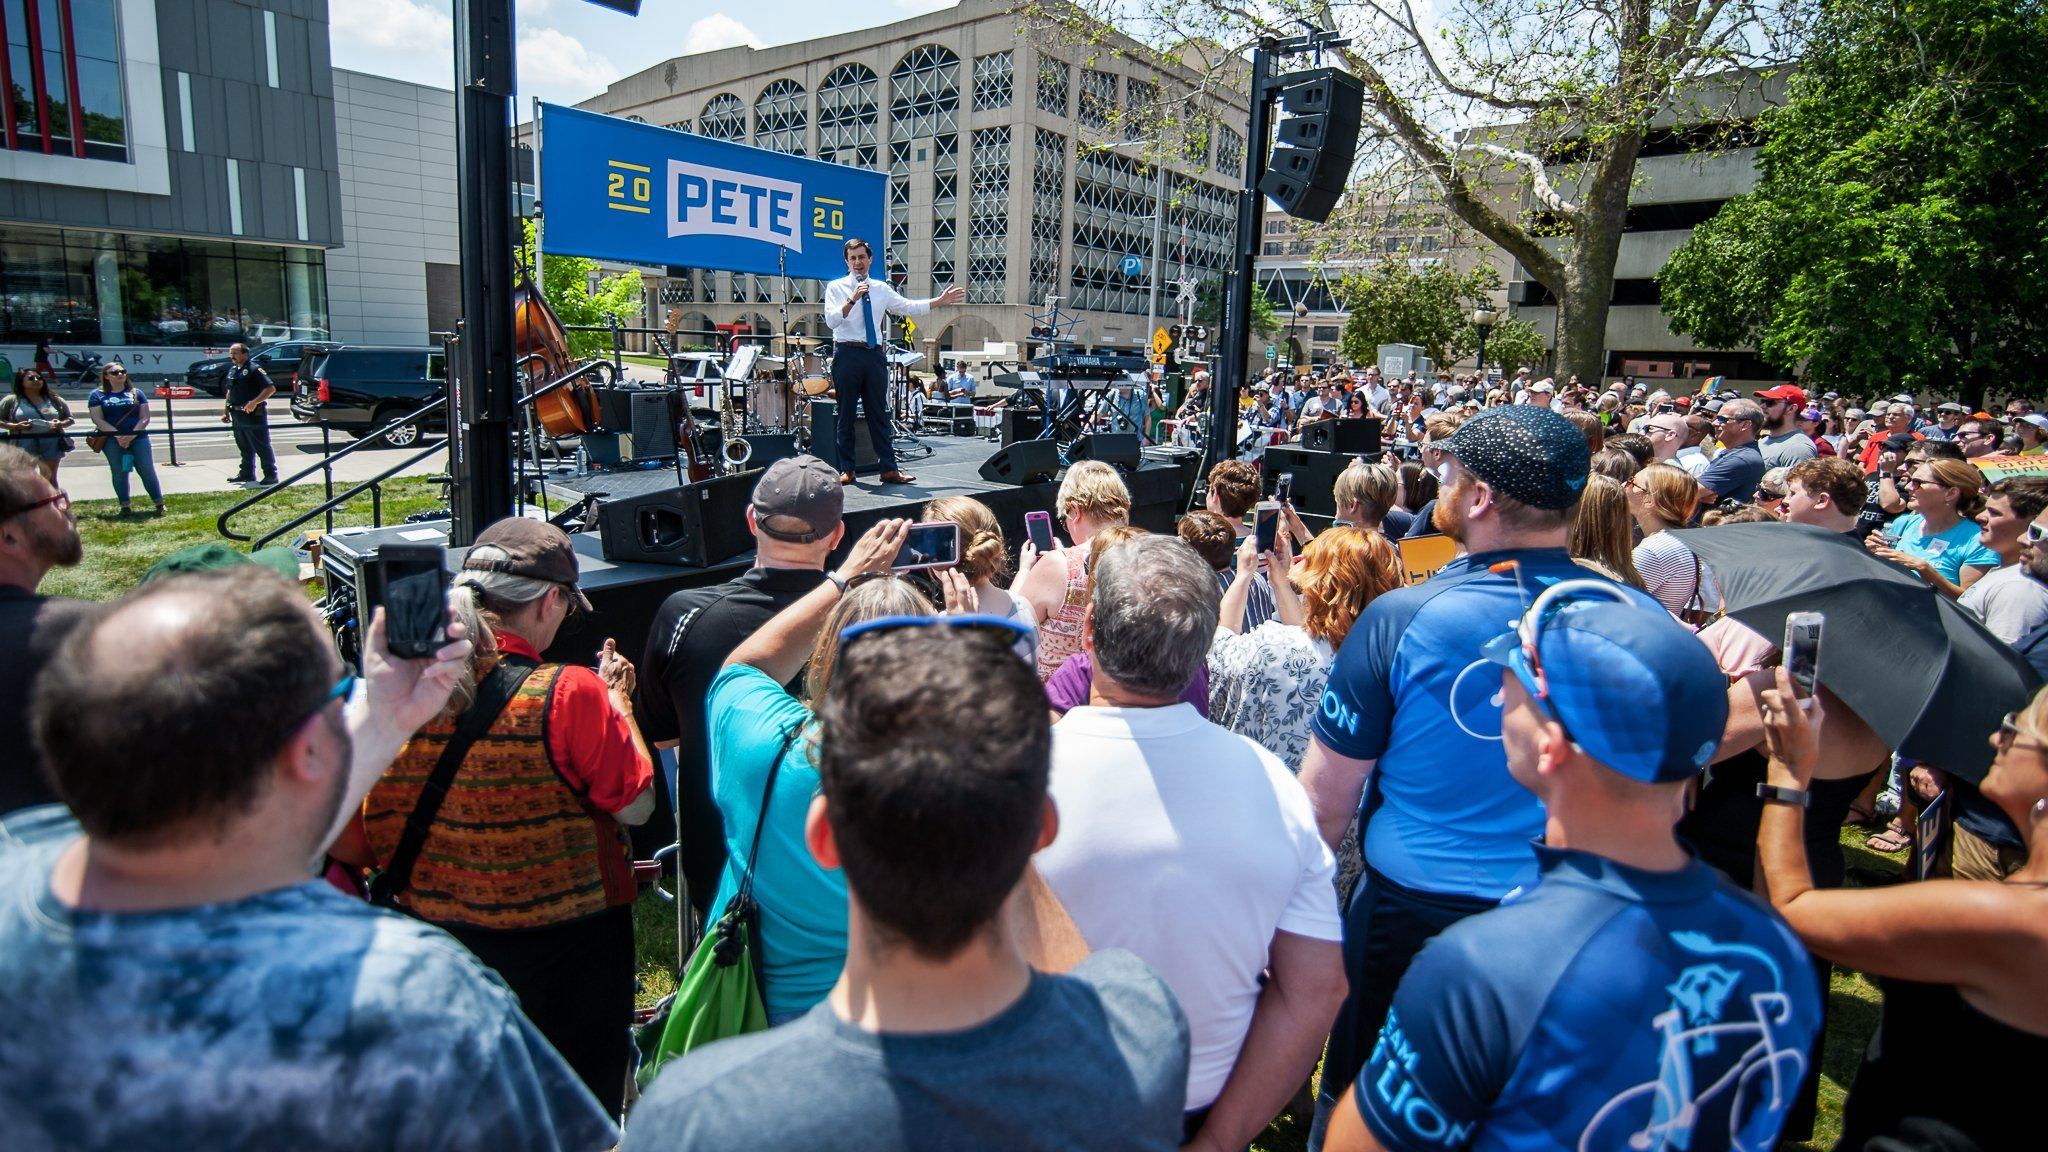 South Bend, Indiana Mayor Pete Buttigieg speaking at a presidential campaign event in Cedar Rapids, Iowa